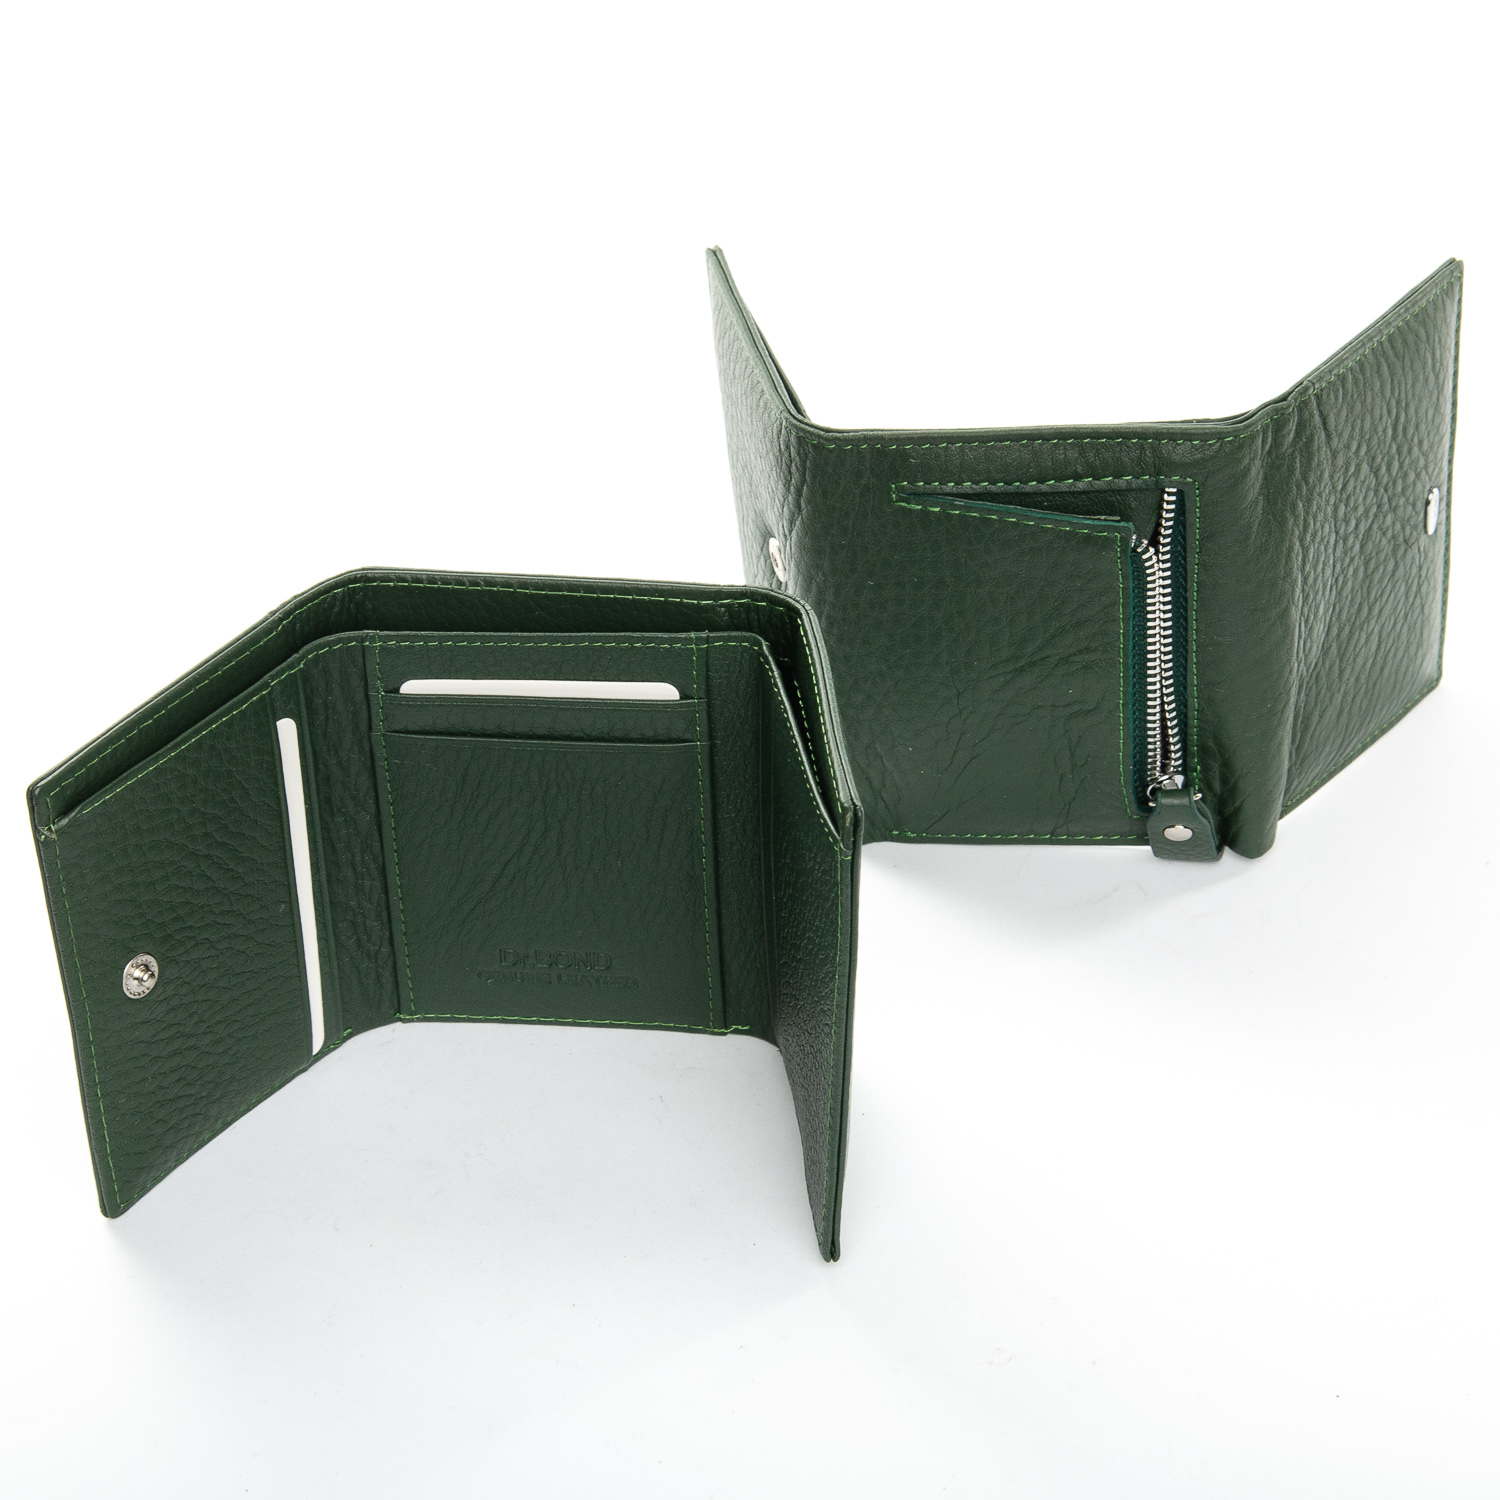 Кошелек Classic кожа DR. BOND WS-6 dark-green - фото 4